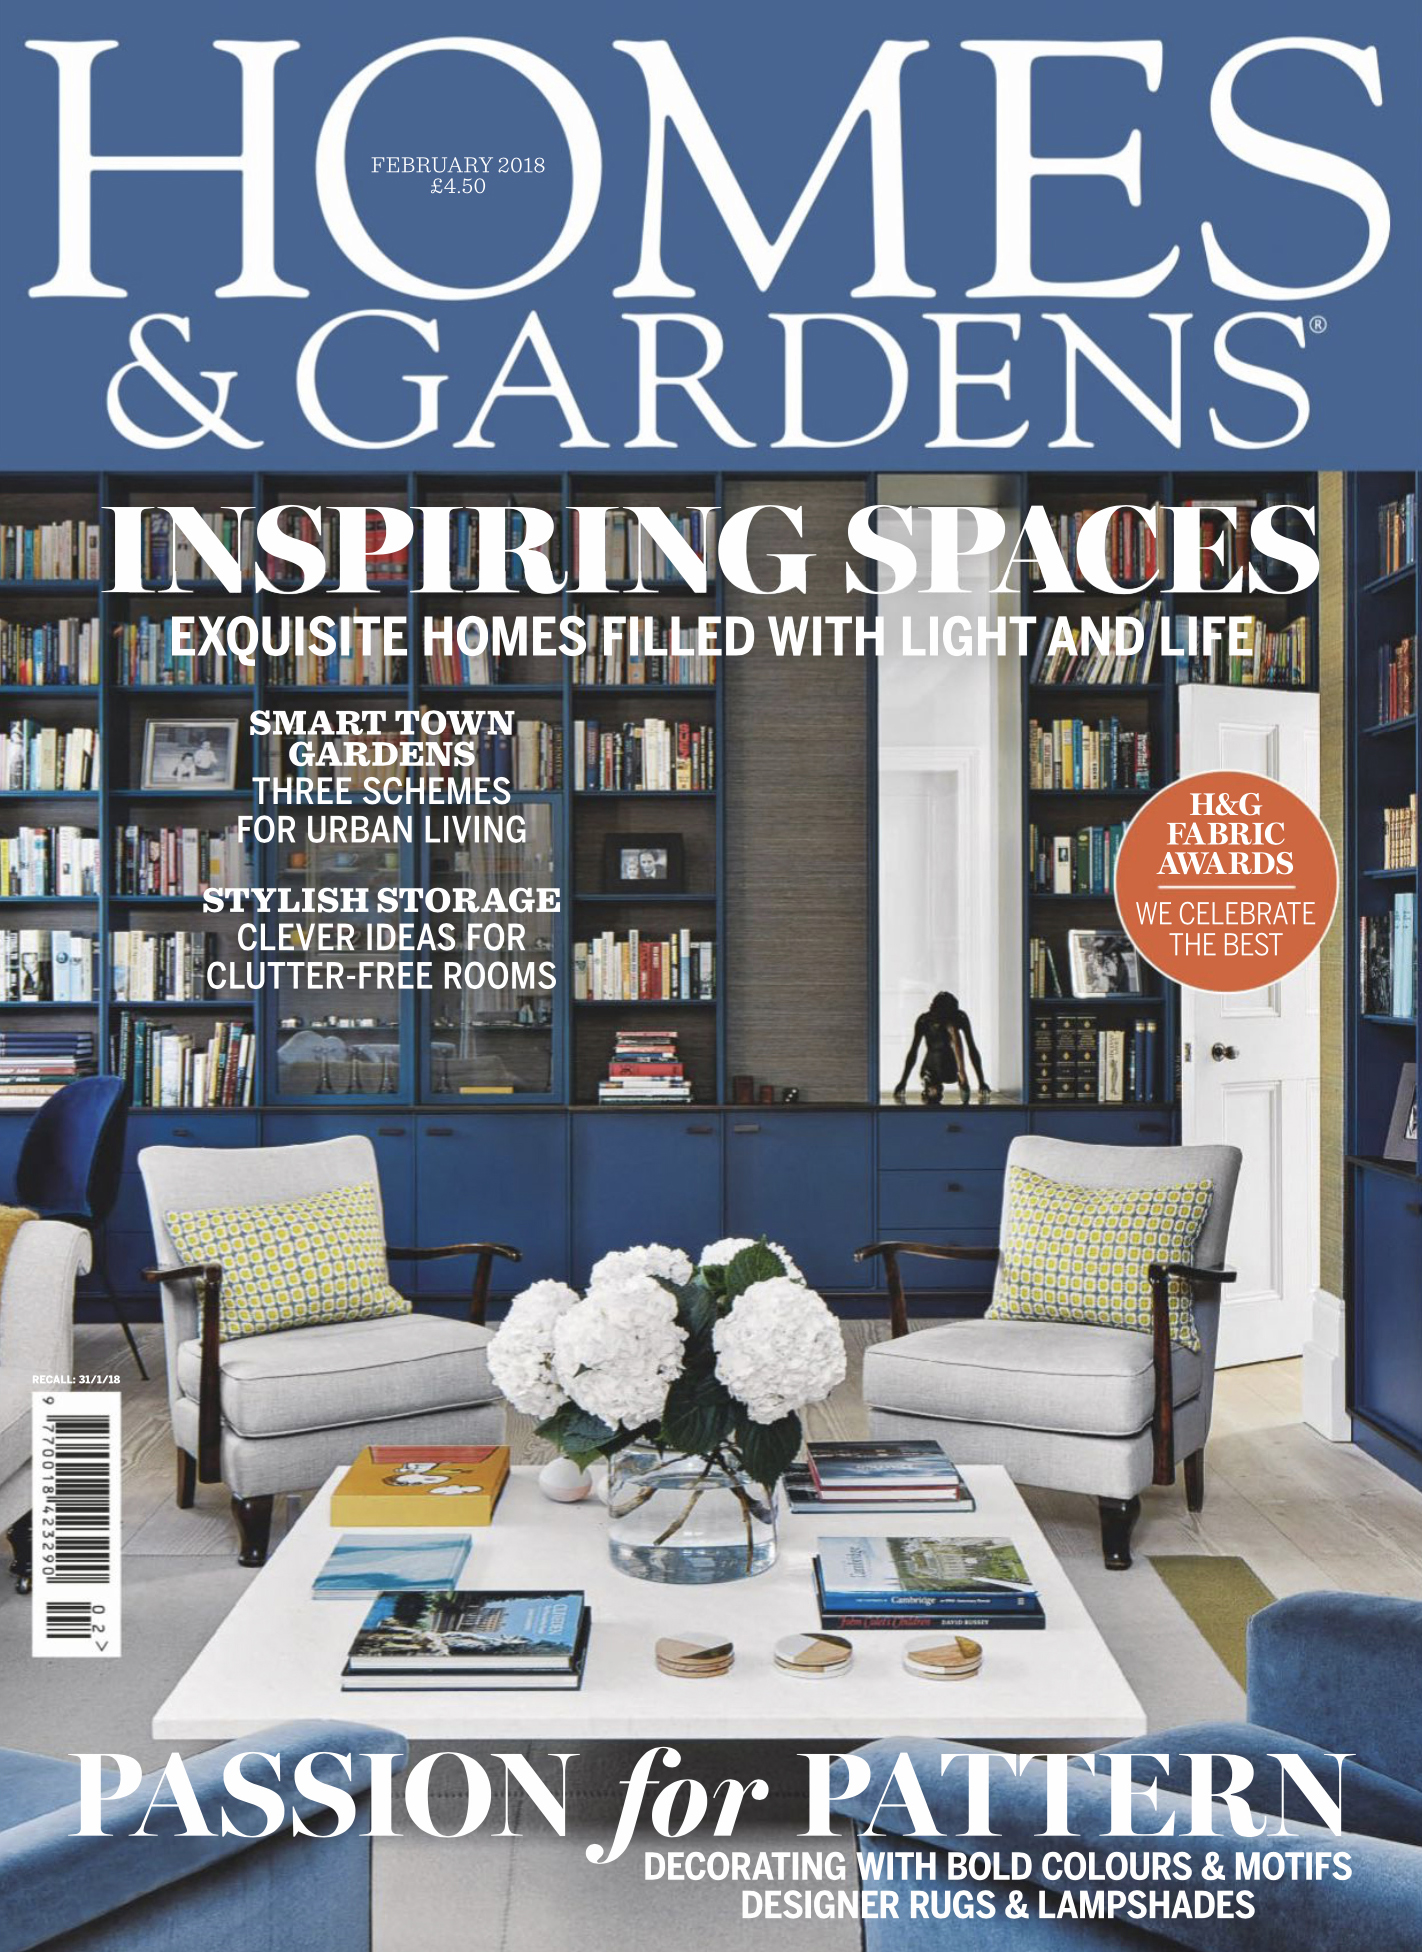 Homes & Gardens front cover.jpg